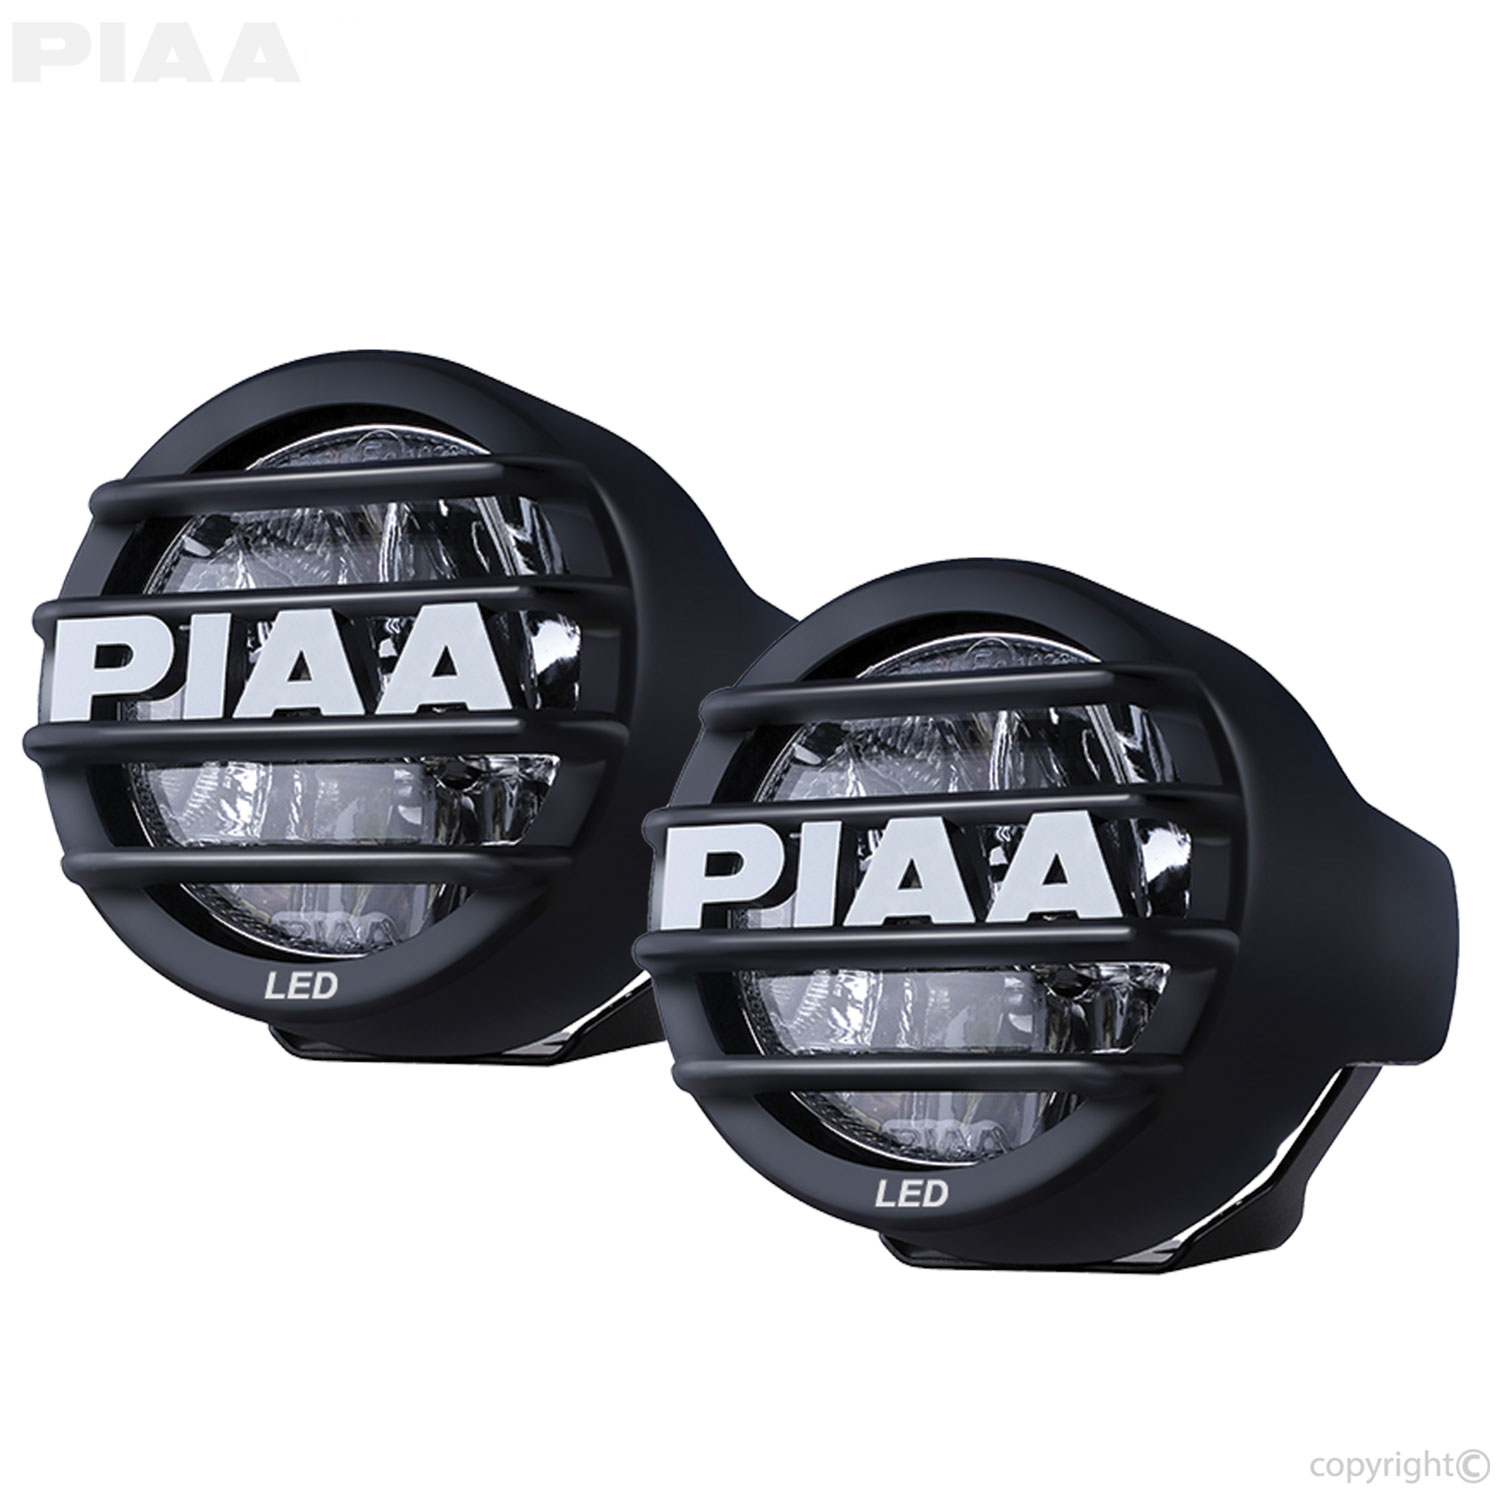 BMW LP530 3.5  LED Driving Light Kit - 73532+ ...  sc 1 st  Piaa & PIAA LED Lights for BMW Motorcycles azcodes.com